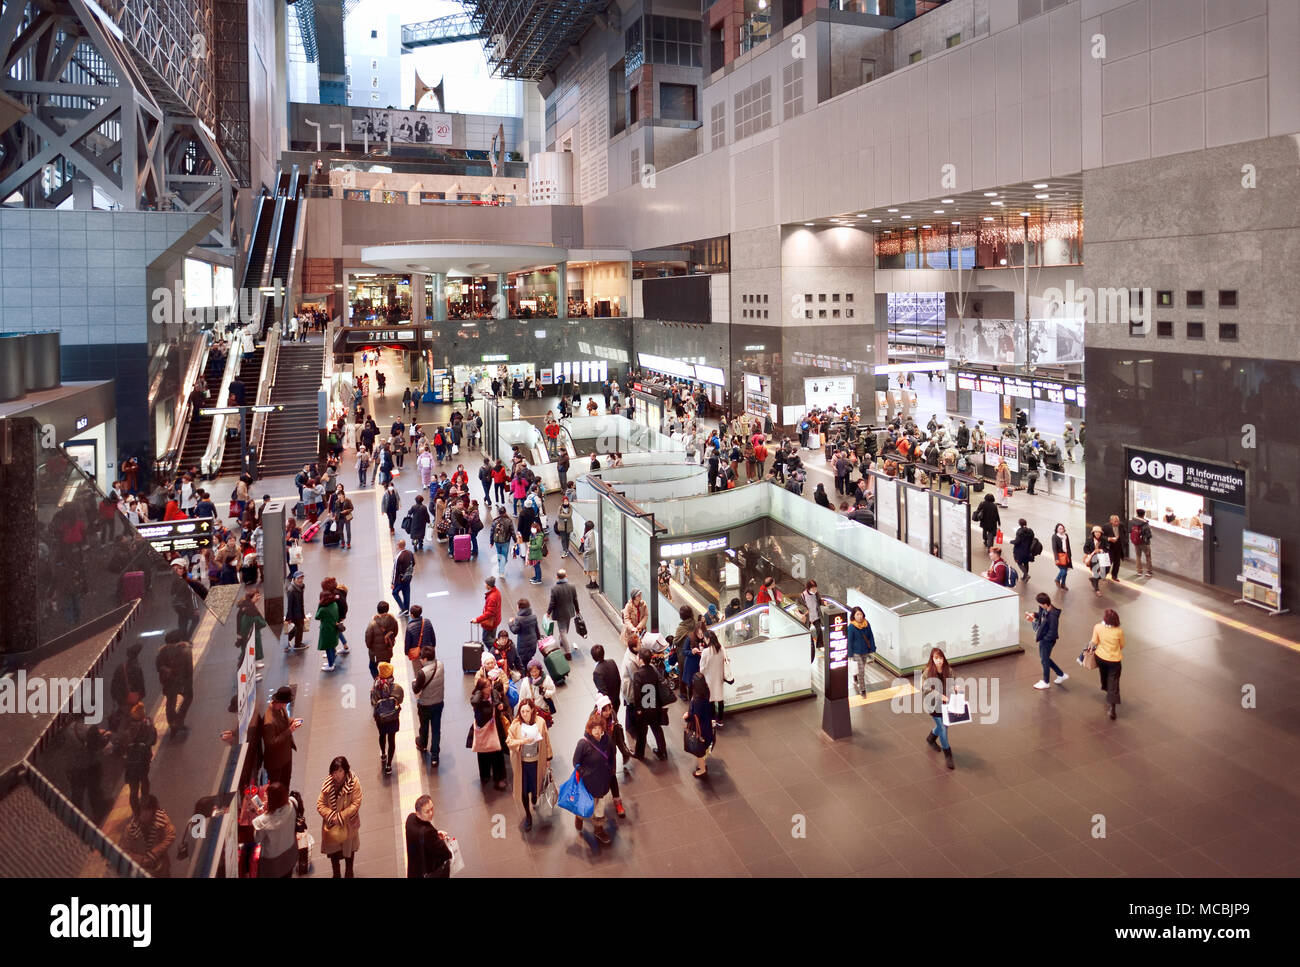 Kyoto Station building interior busy with people in the evening, Shimogyo-ku, Kyoto, Japan - Stock Image